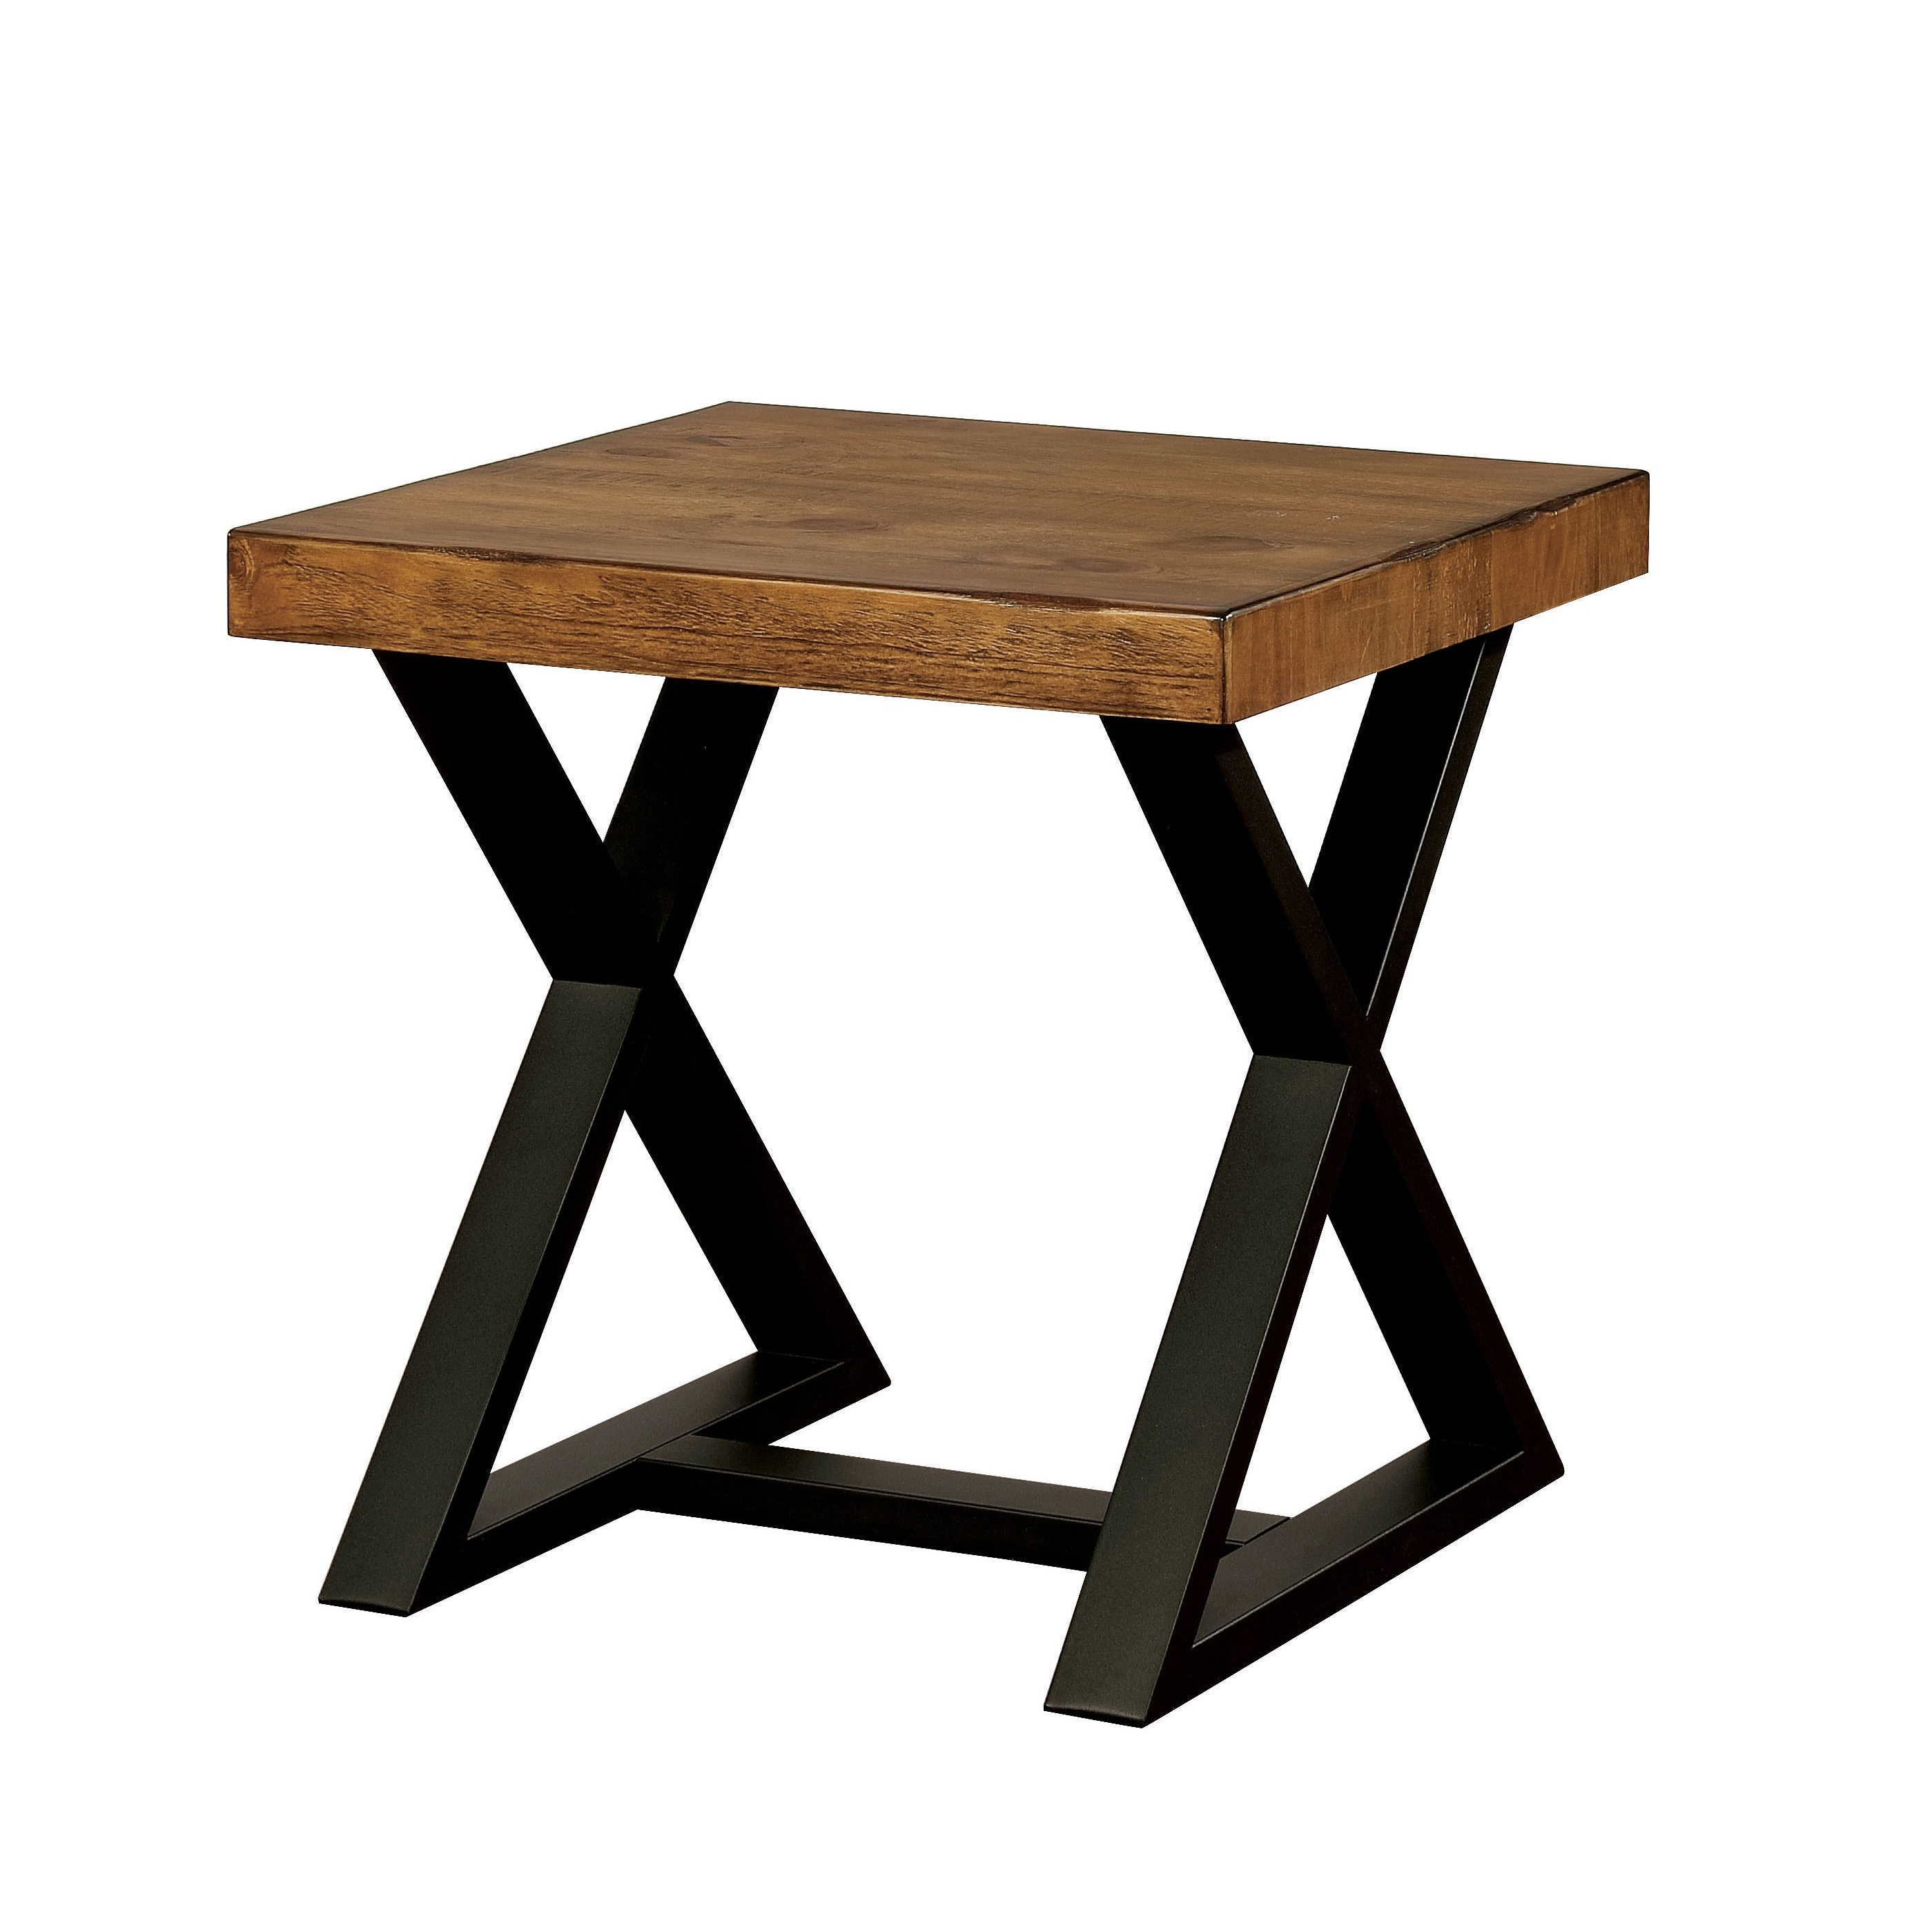 furniture america wildrow black wood trestle end table with rustic two tone room essentials accent oak finish free shipping today small occasional barn door kitchen cabinets